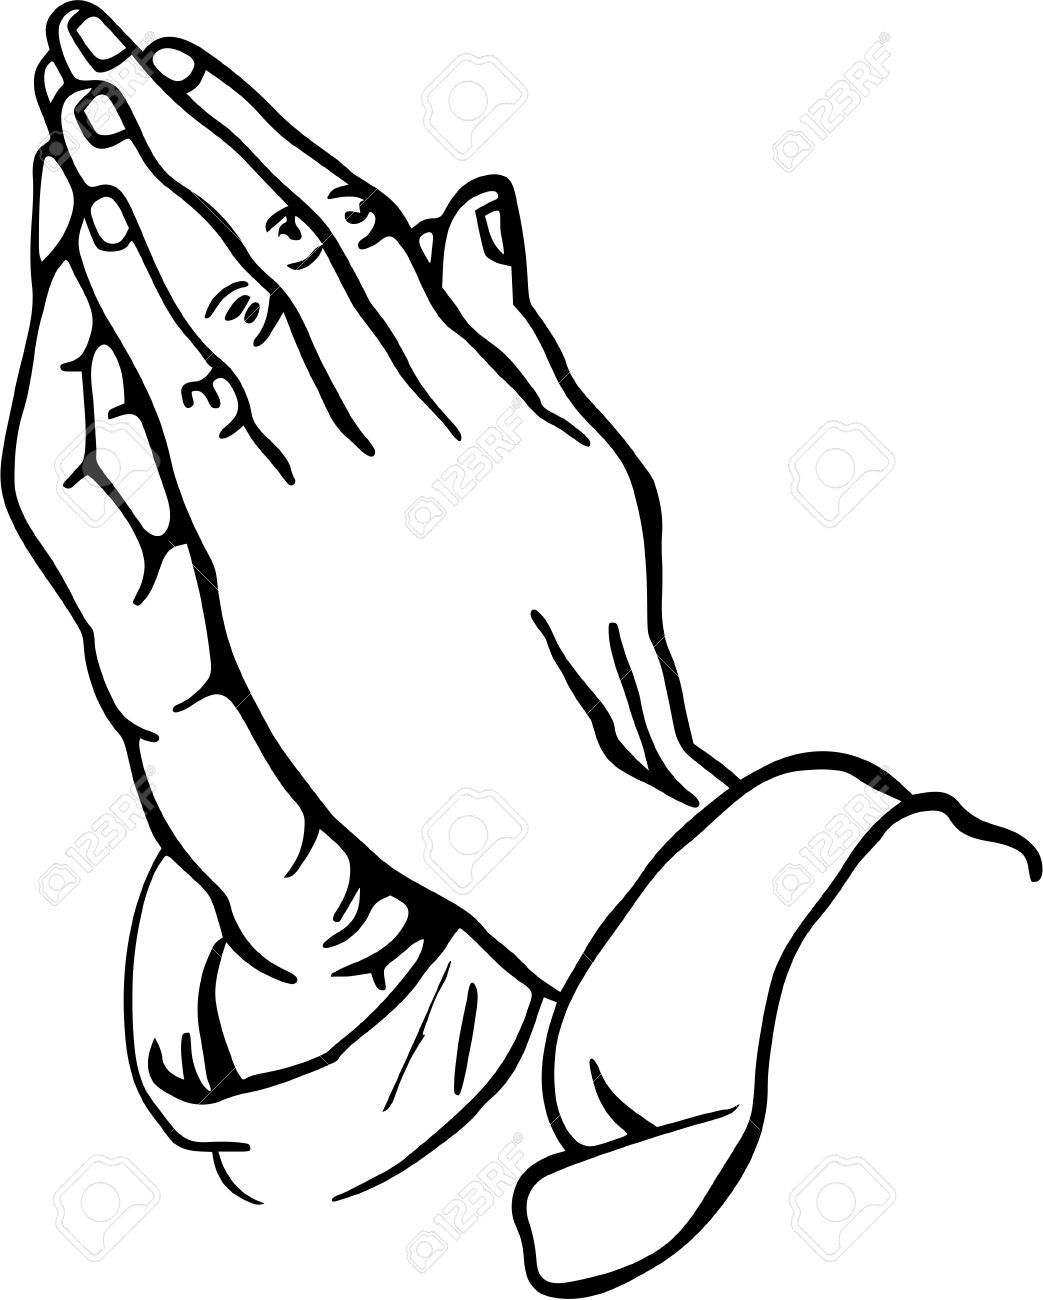 1043x1300 Praying Hands Clipart Stock Photo, Picture And Royalty Free Image